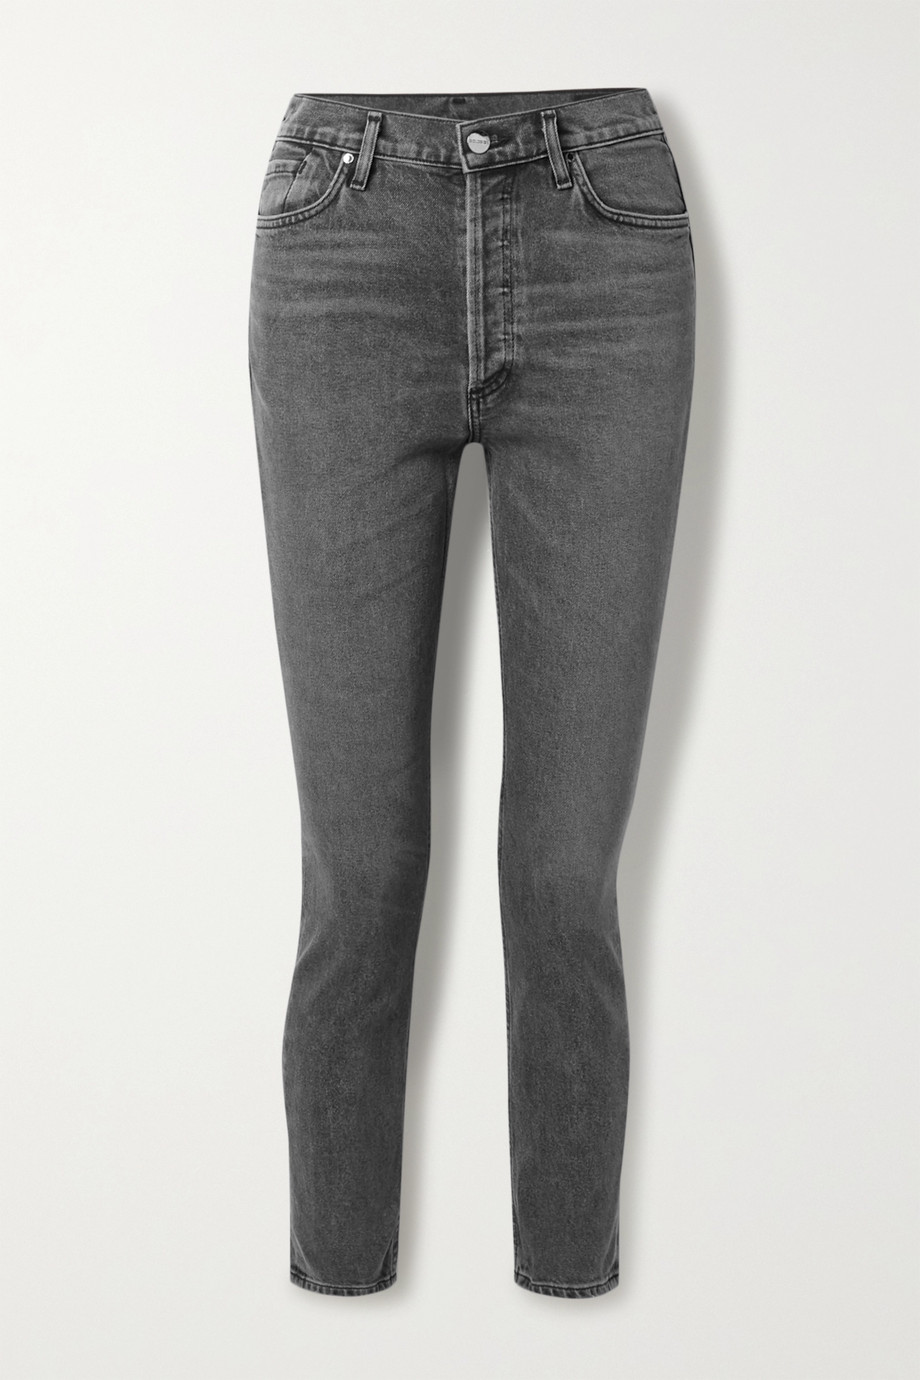 GOLDSIGN + NET SUSTAIN high-rise slim-leg jeans